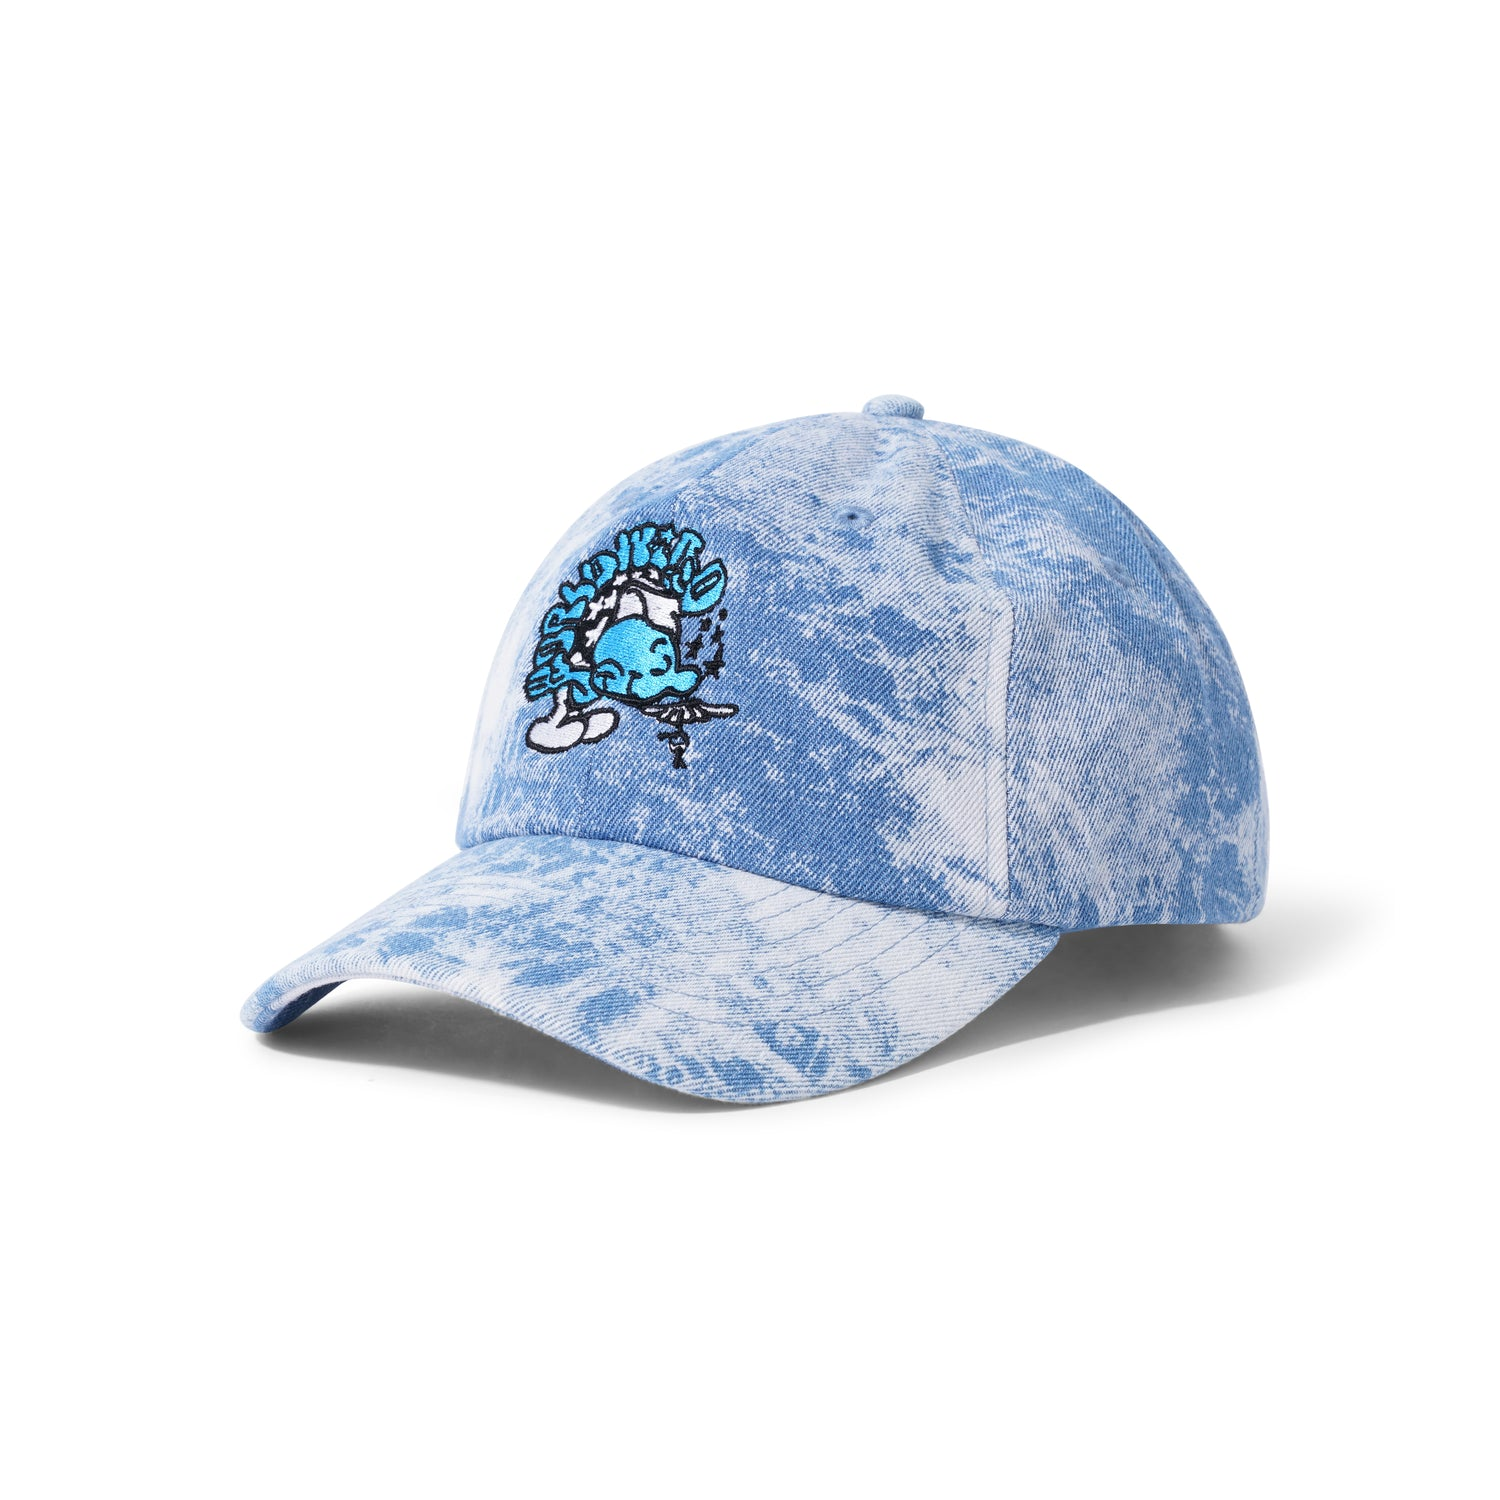 Smellurf Cap, Blue